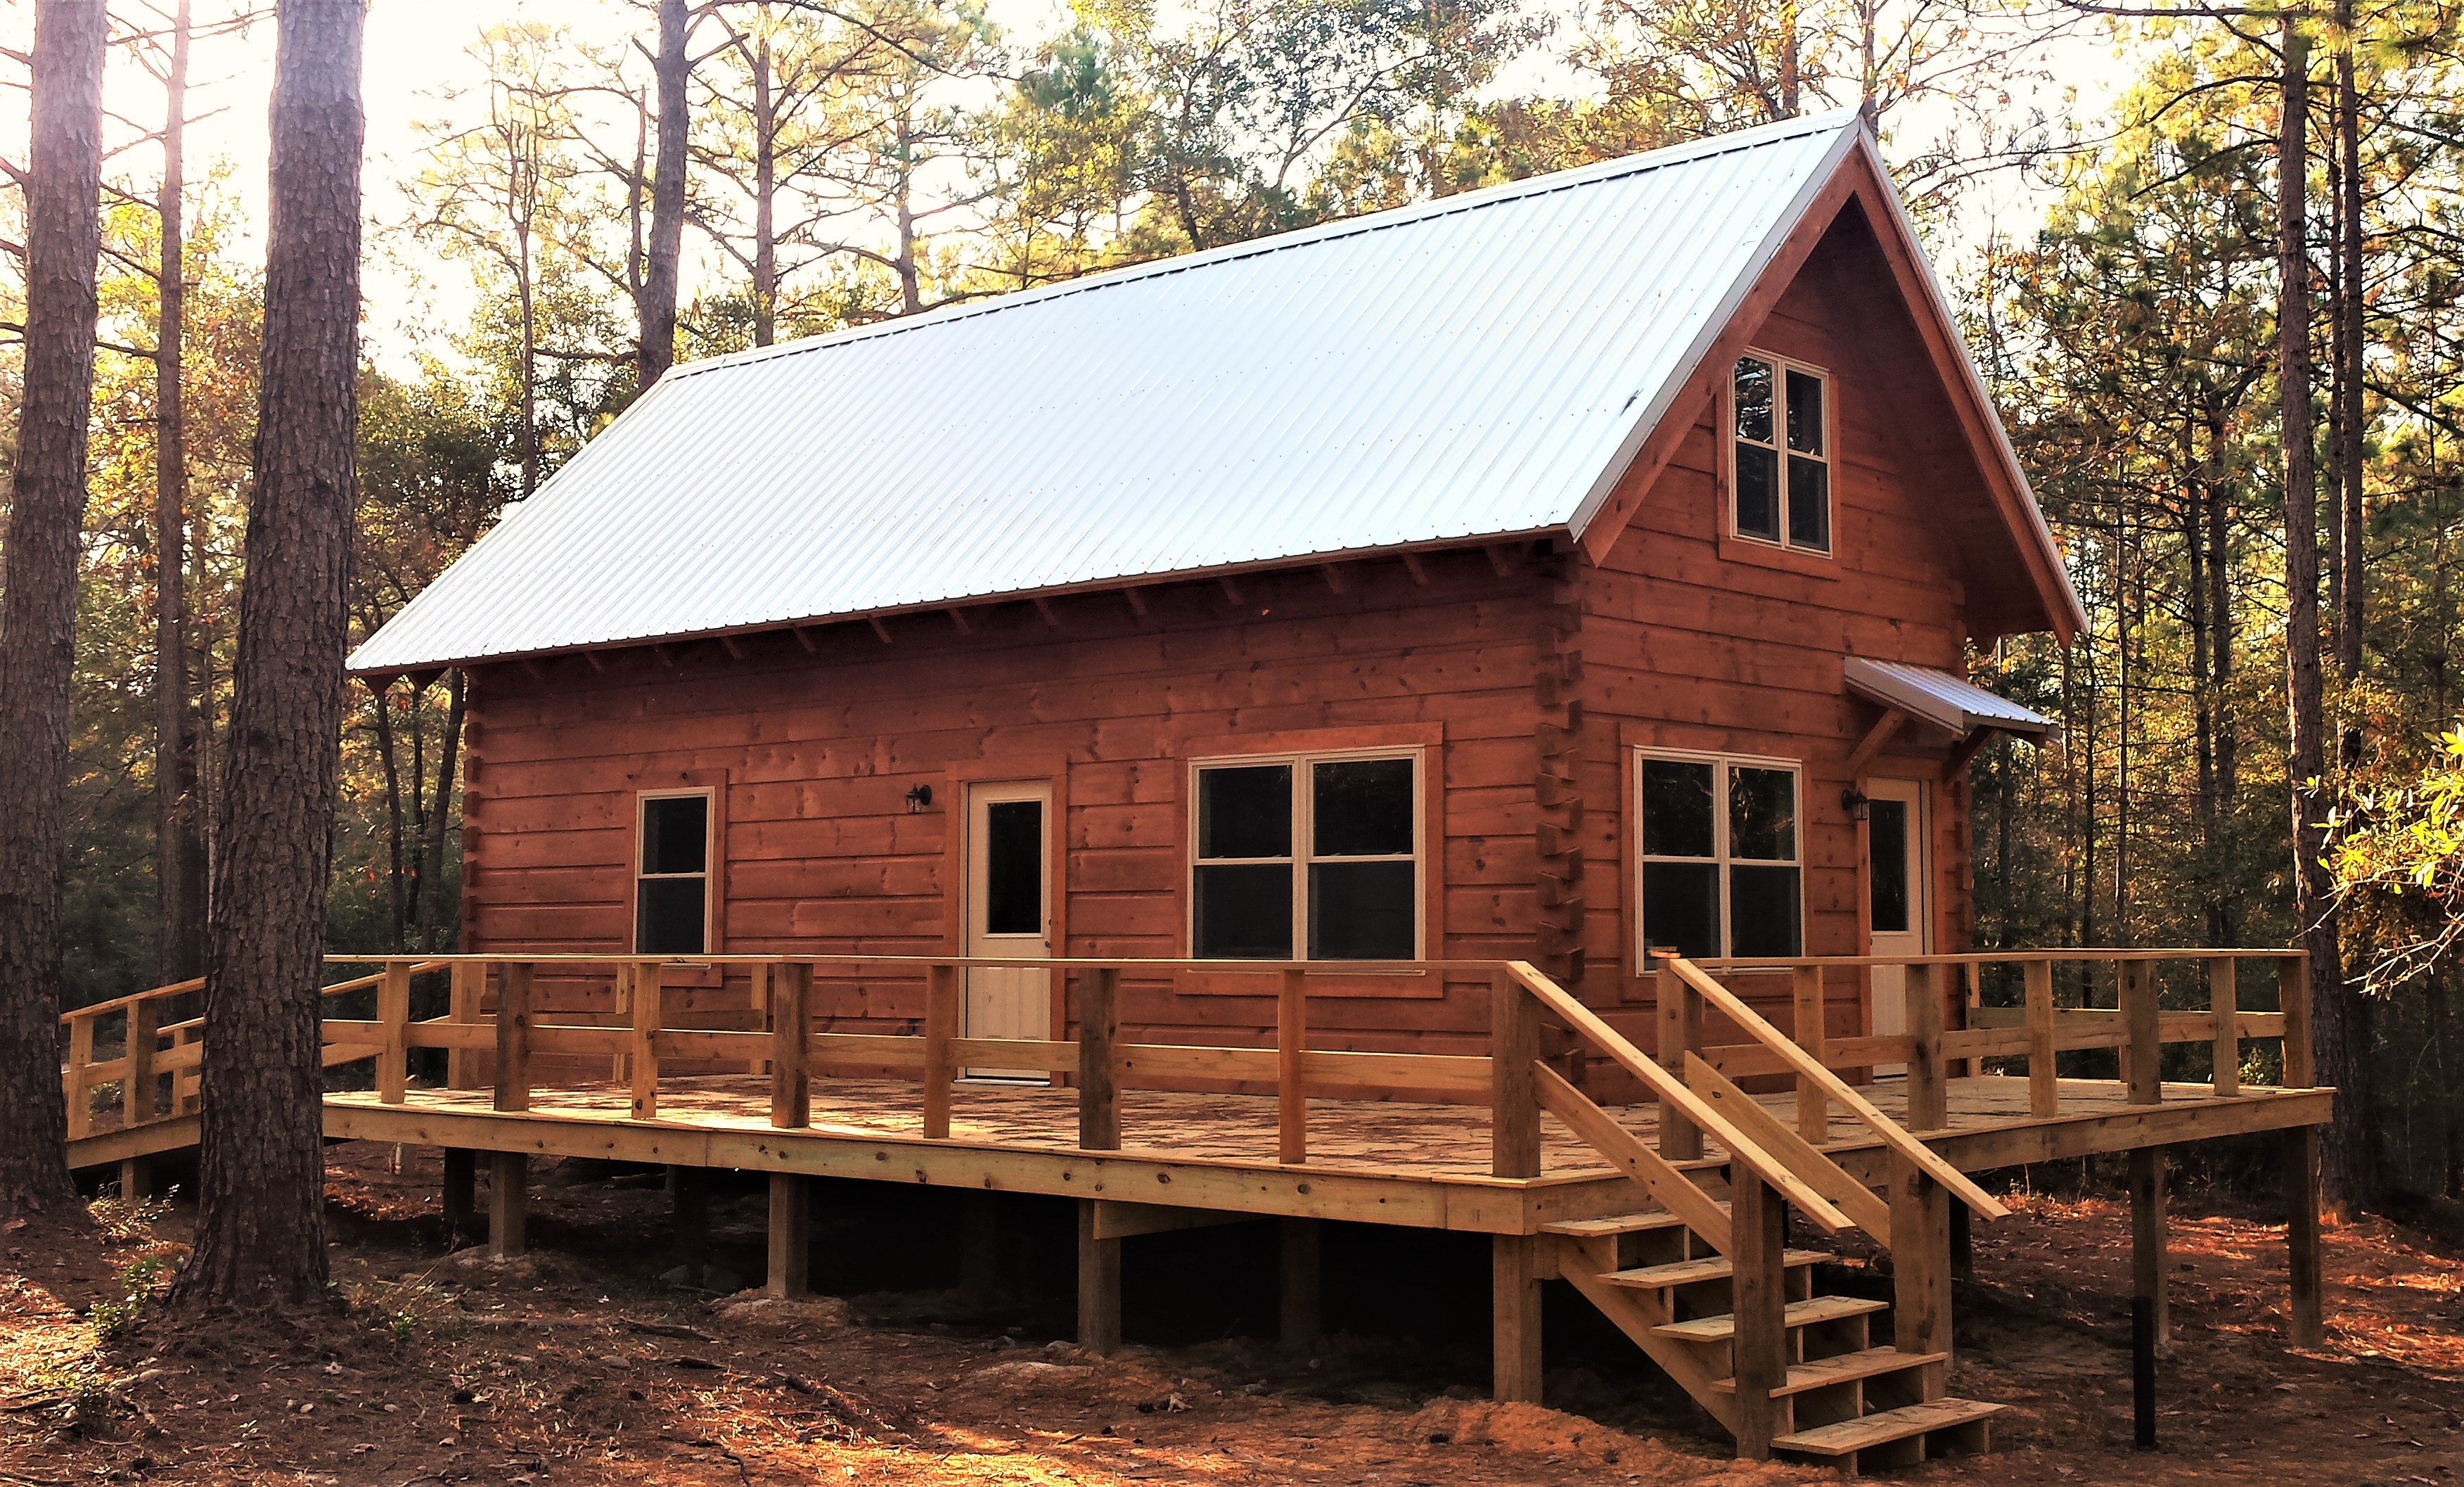 https://alabama-travel.s3.amazonaws.com/partners-uploads/photo/image/5a33eb0efd87ba3dbc000013/peters_cabin.jpg